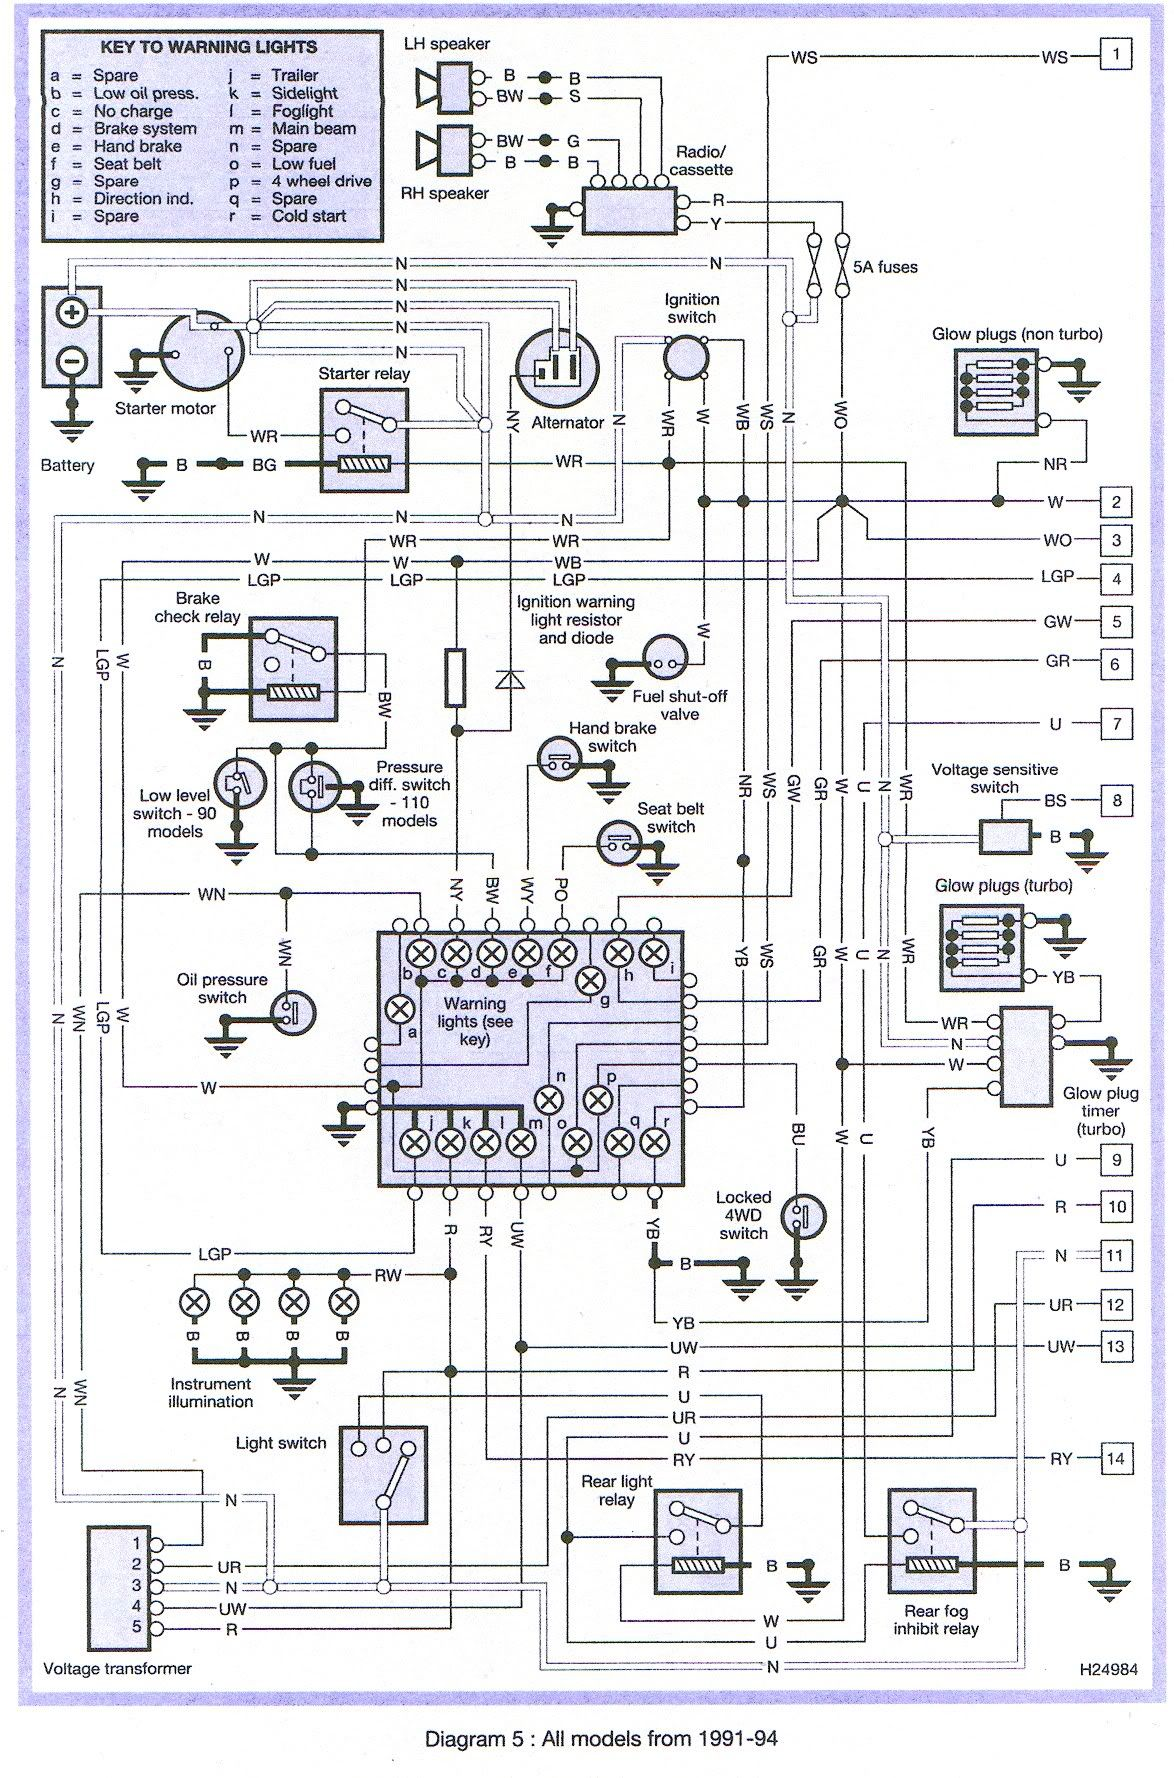 07629544bfff38ad2881b2c21312c6e6 land rover discovery wiring diagram manual repair with engine Land Rover Discovery 1 at pacquiaovsvargaslive.co